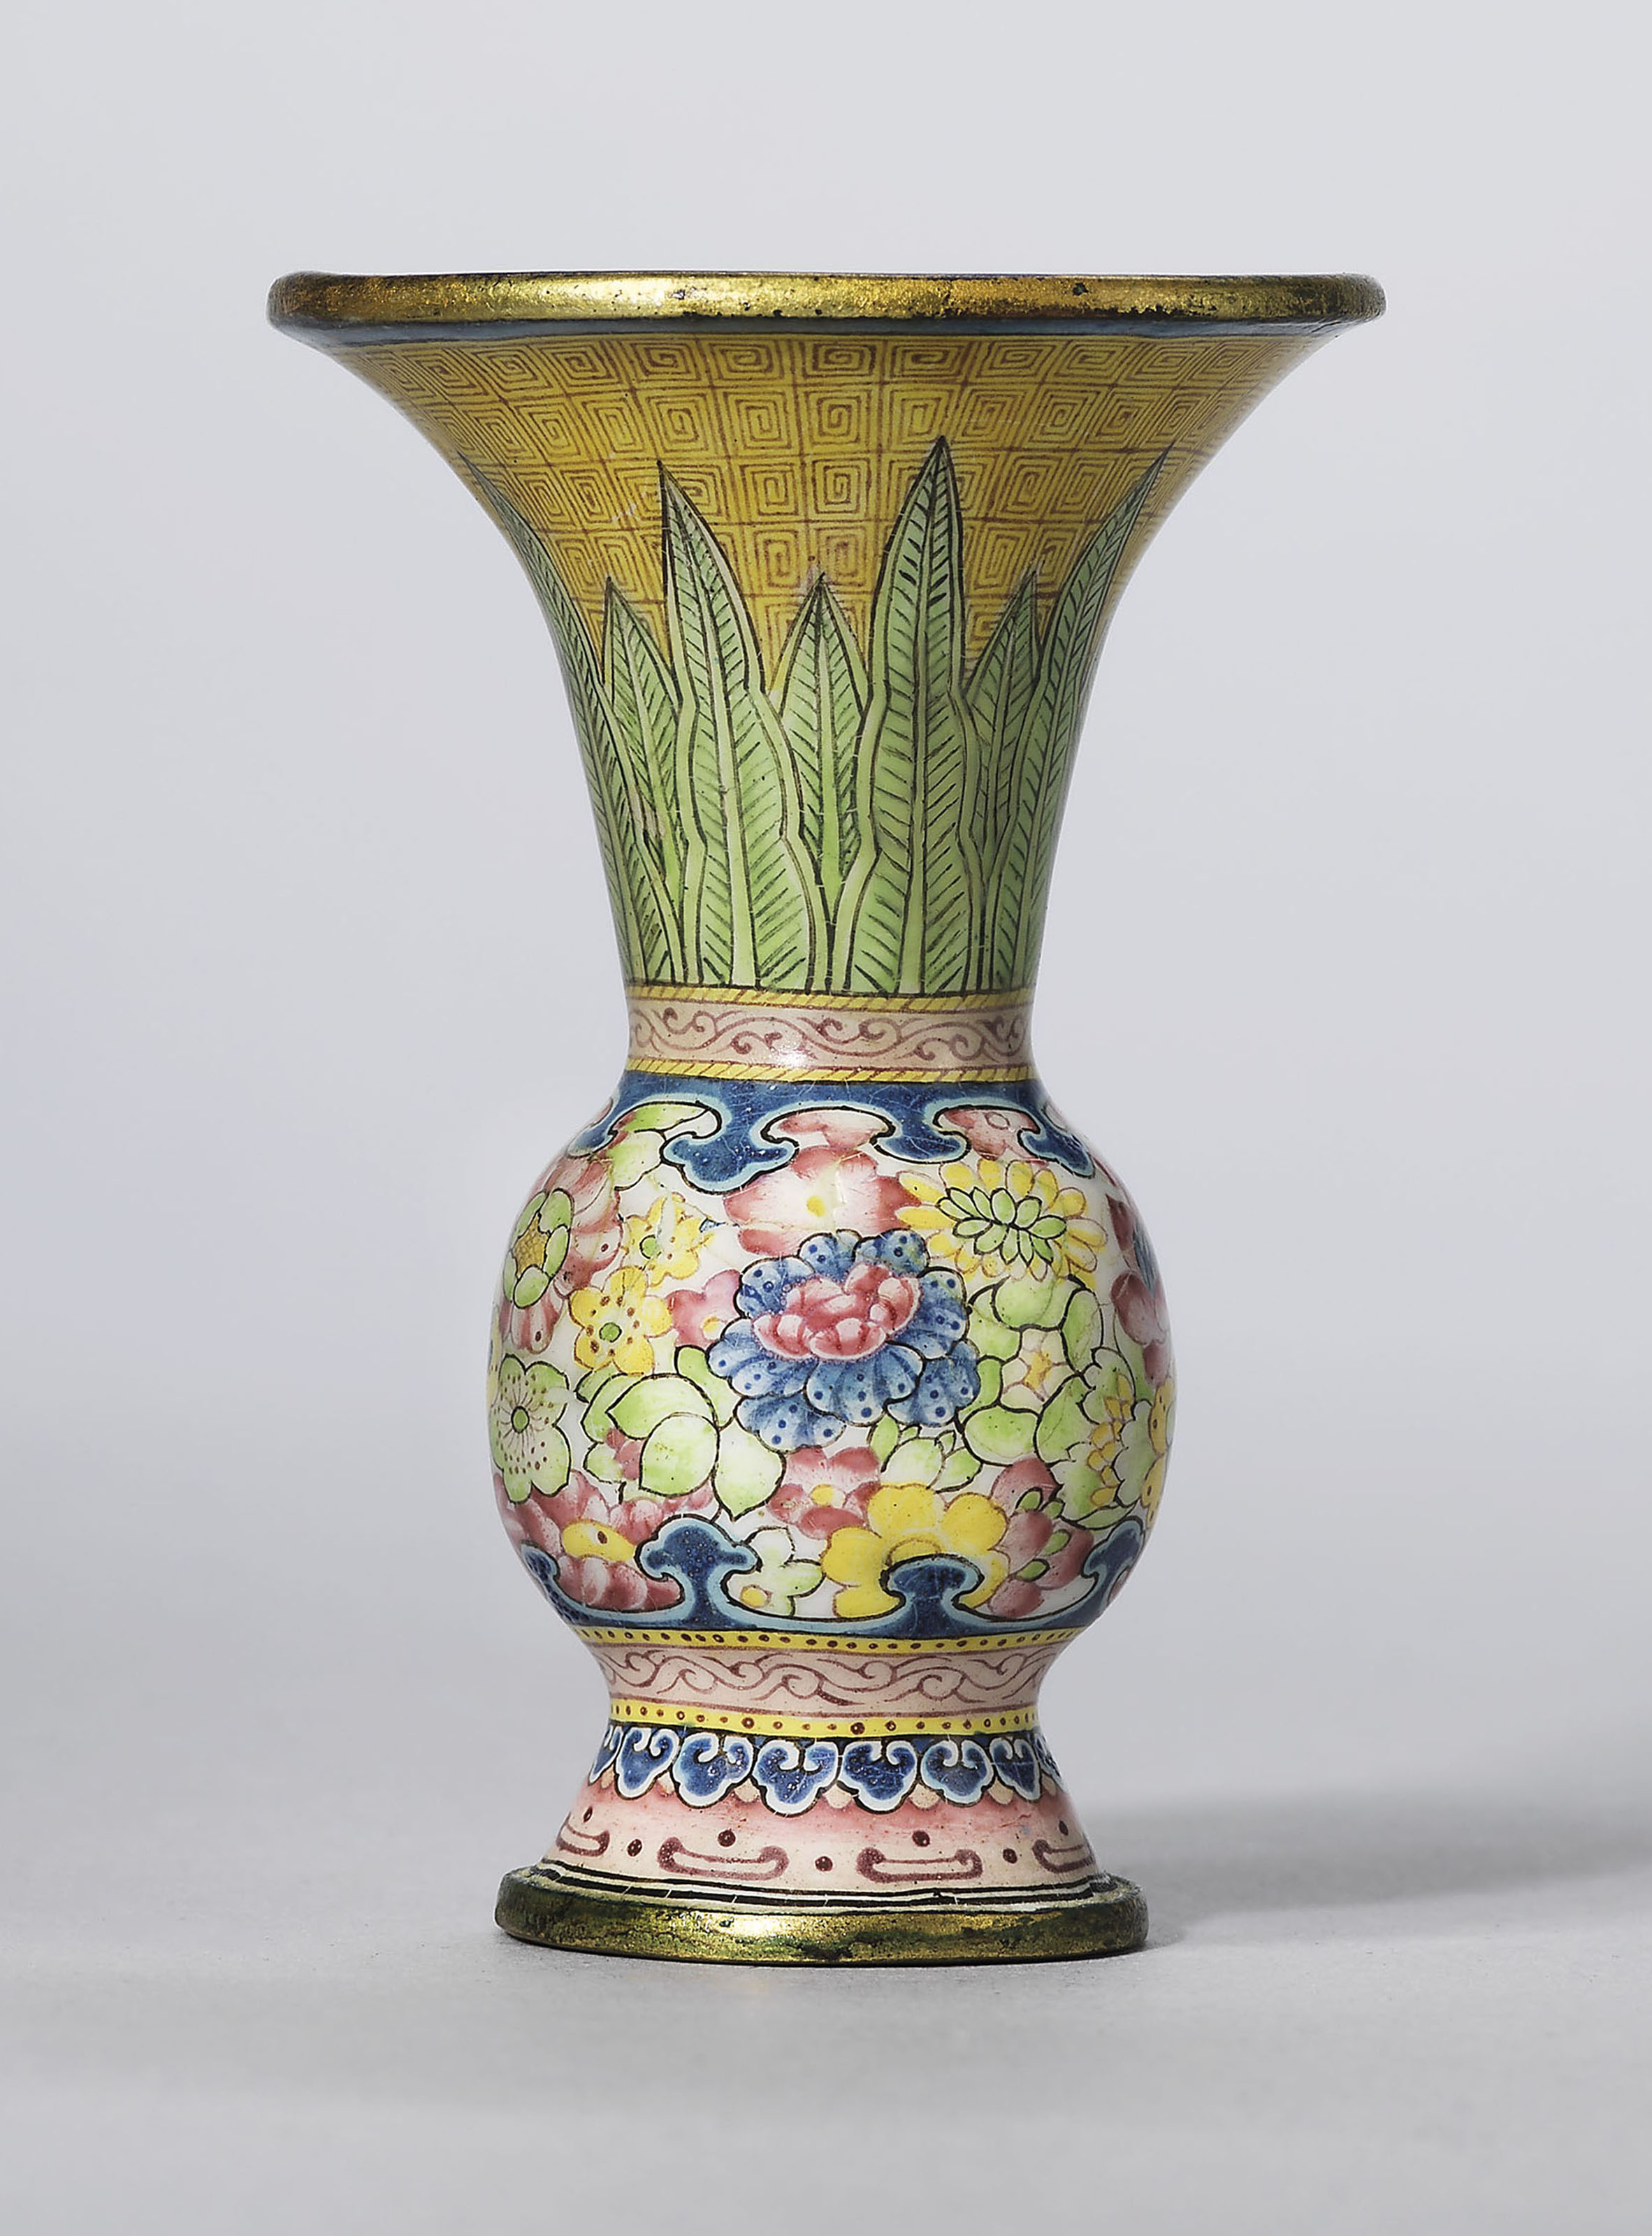 A rare painted enamel gu-shaped miniature vase, Qianlong four-character mark in blue enamel and of the period (1736-1795). 2½  in (6.4  cm) high. Sold for £60,000 on 15 May 2018 at Christie's in London